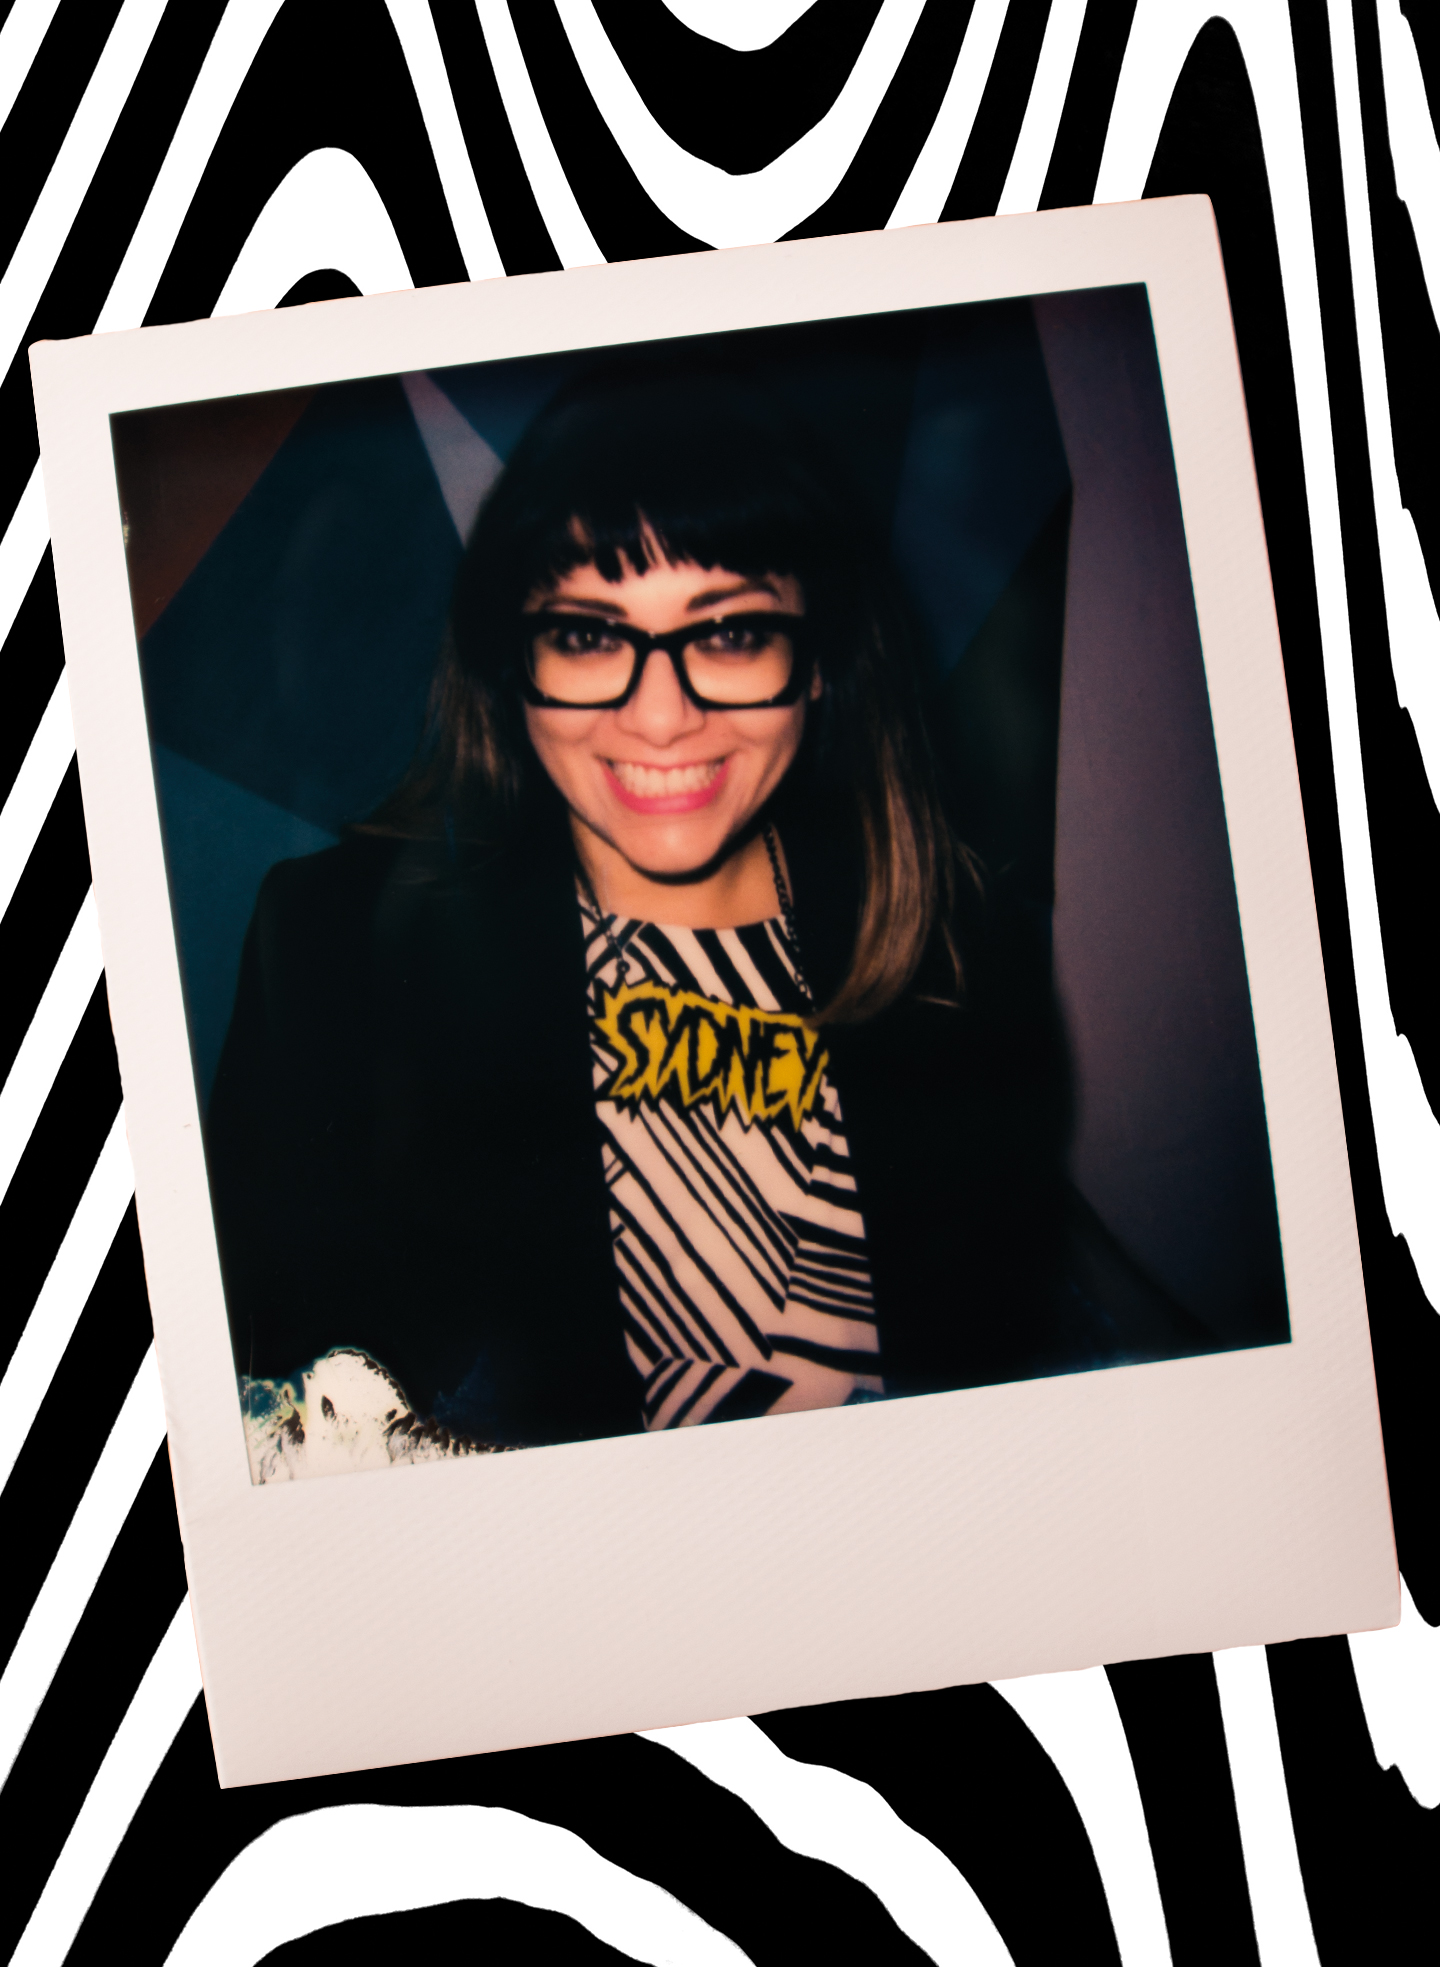 Jess Scully, City of Sydney Councillor & former Vivid Sydney Creative Director polaroid by Aaron VIII